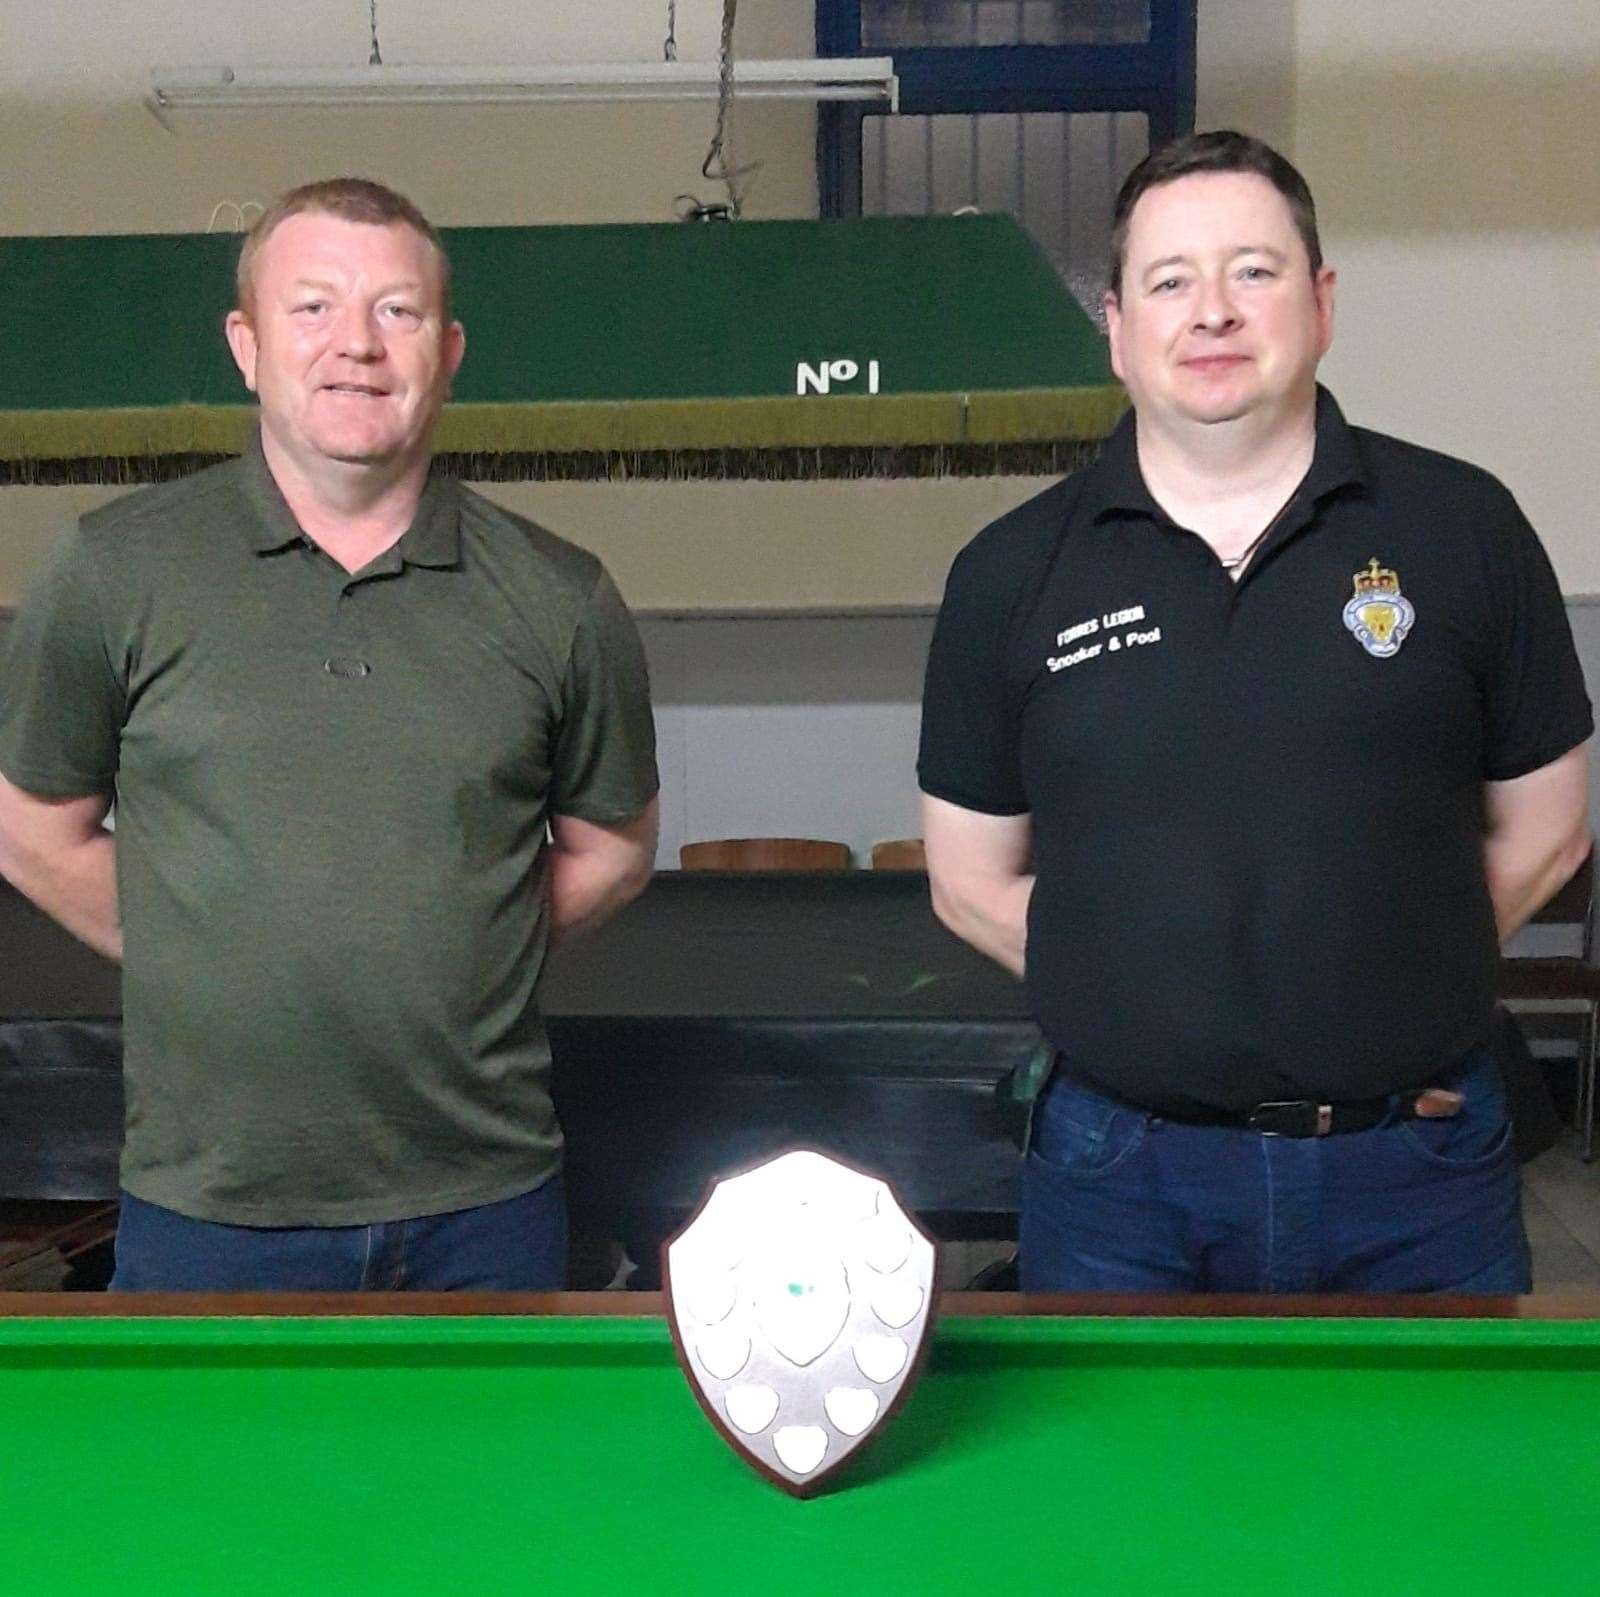 Runner-up Alex Cooper left and Stephen Hepburn, who won the final on the last black ball.